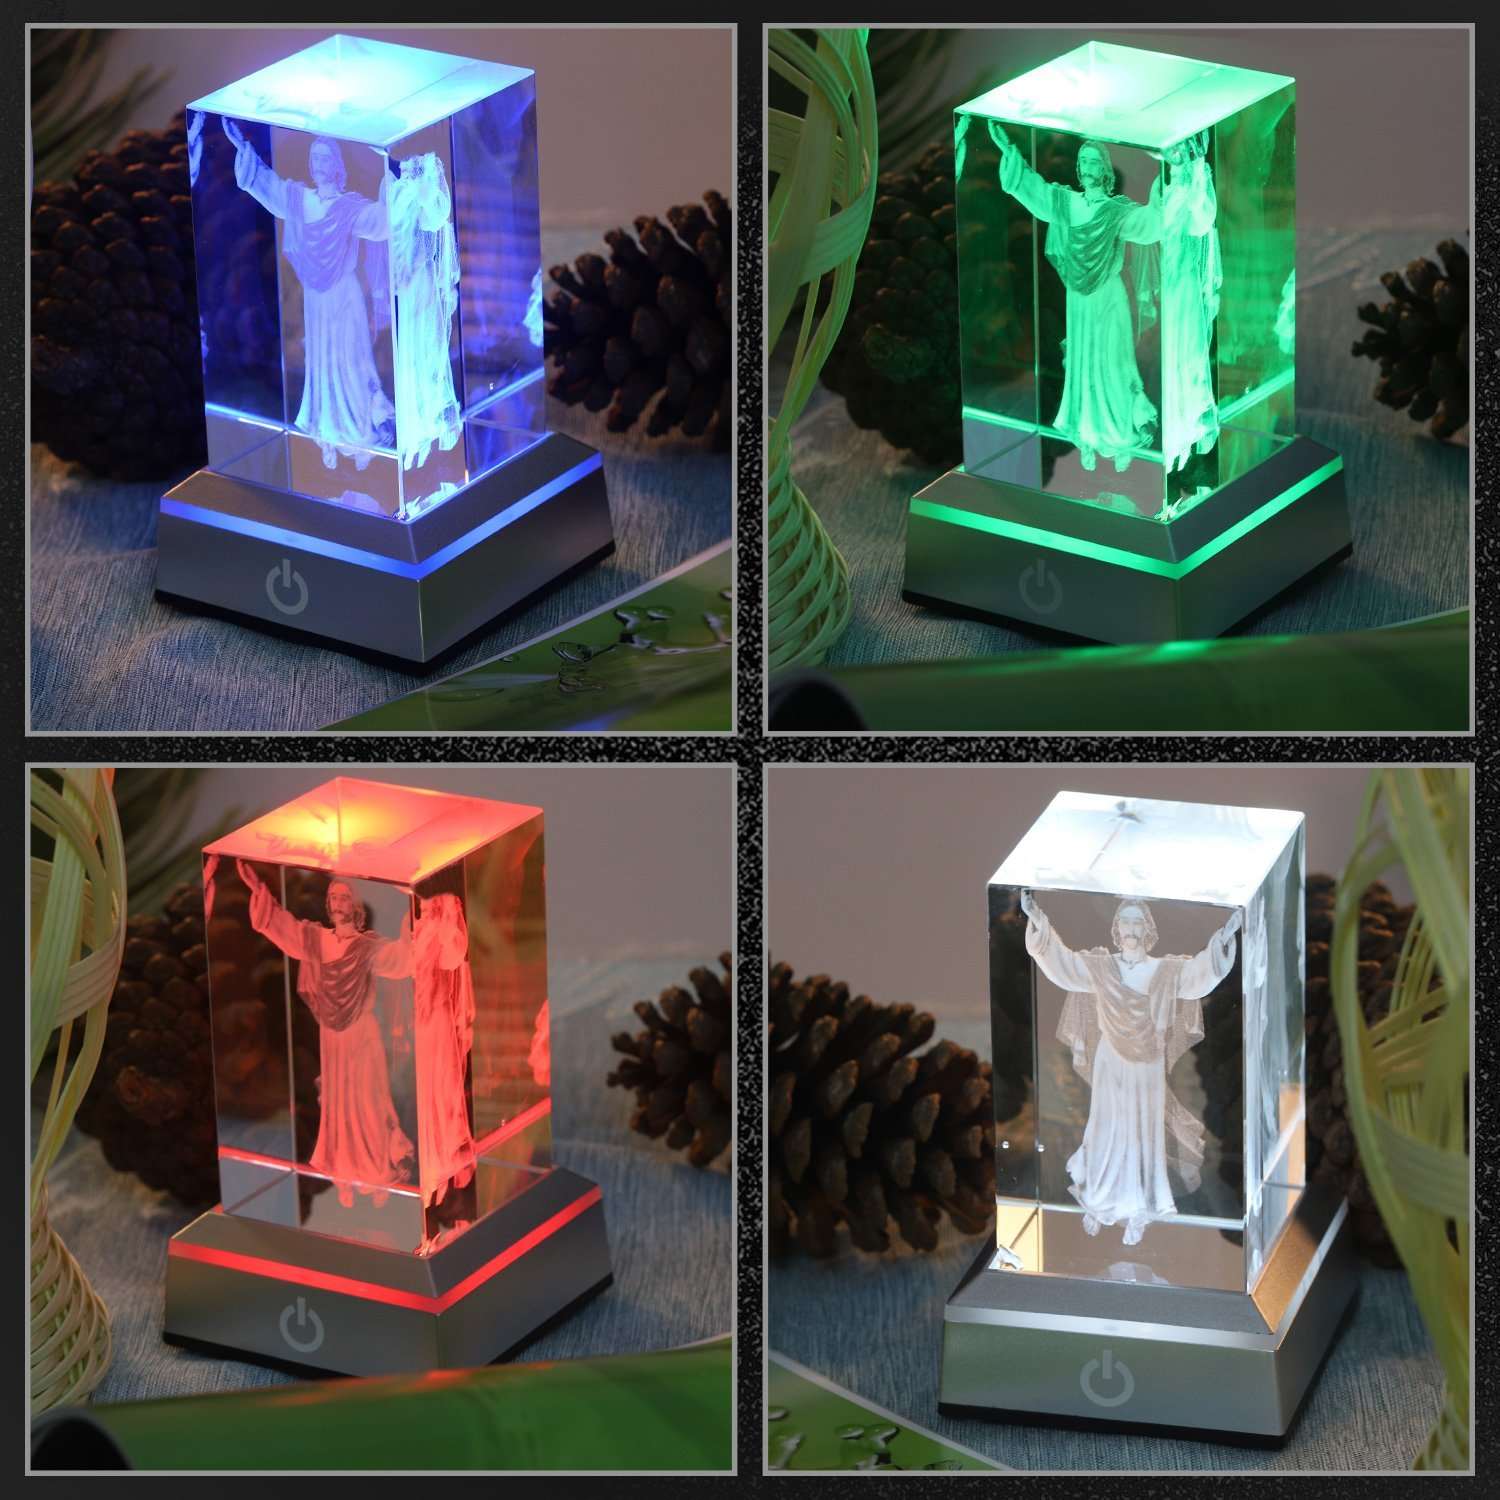 LED Light Base Show Stand Display Plate with Sensitive Touch Switch for 3D Laser Crystal Glass Art Erwei Guoji